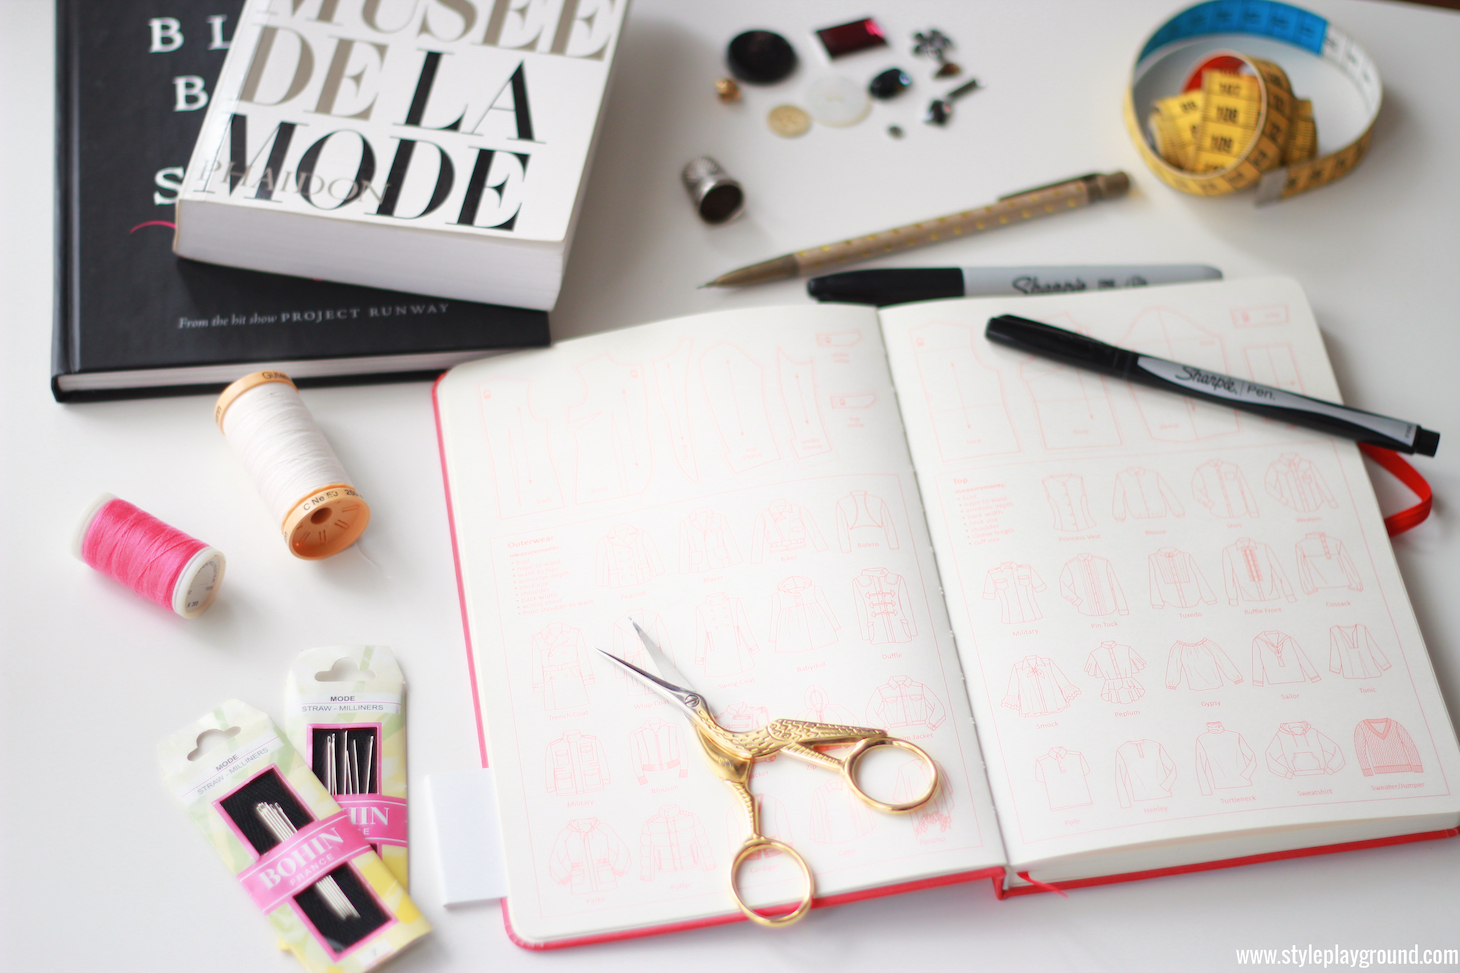 Tips for choosing a fashion school from a former student